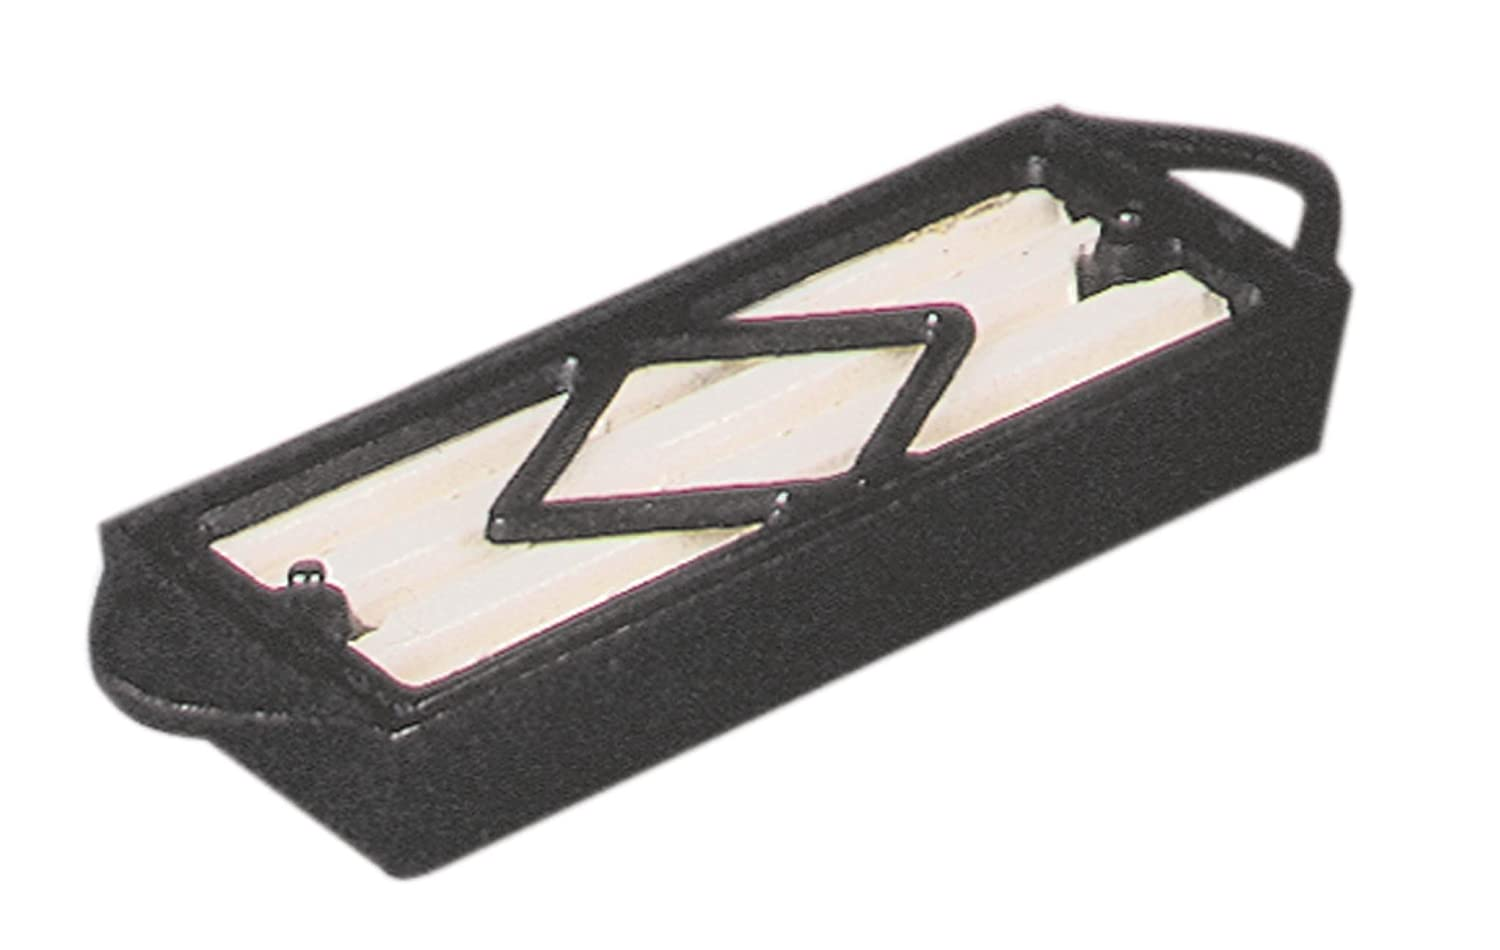 Cast Iron Firestarter Tray Item# FS-C1137 UniFlame W-1125